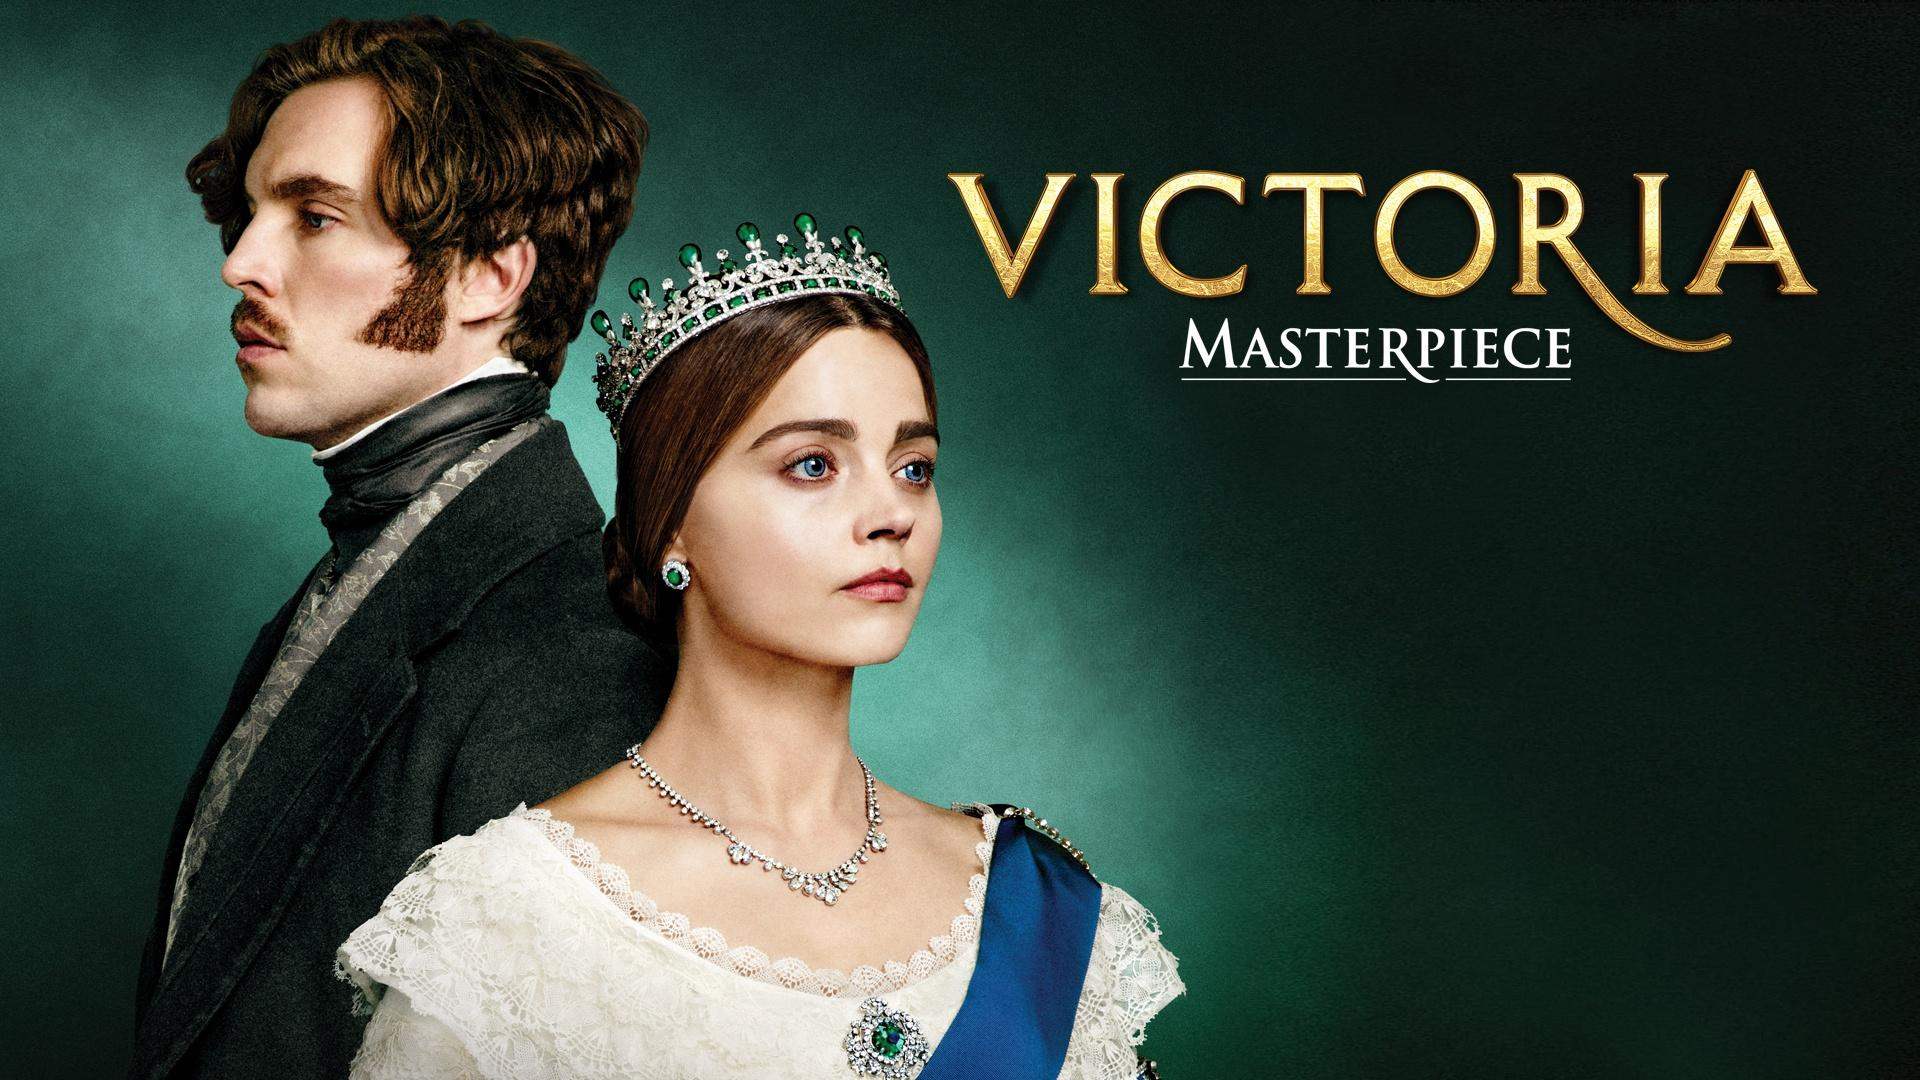 How can I watch episodes of Victoria? : PBS Help